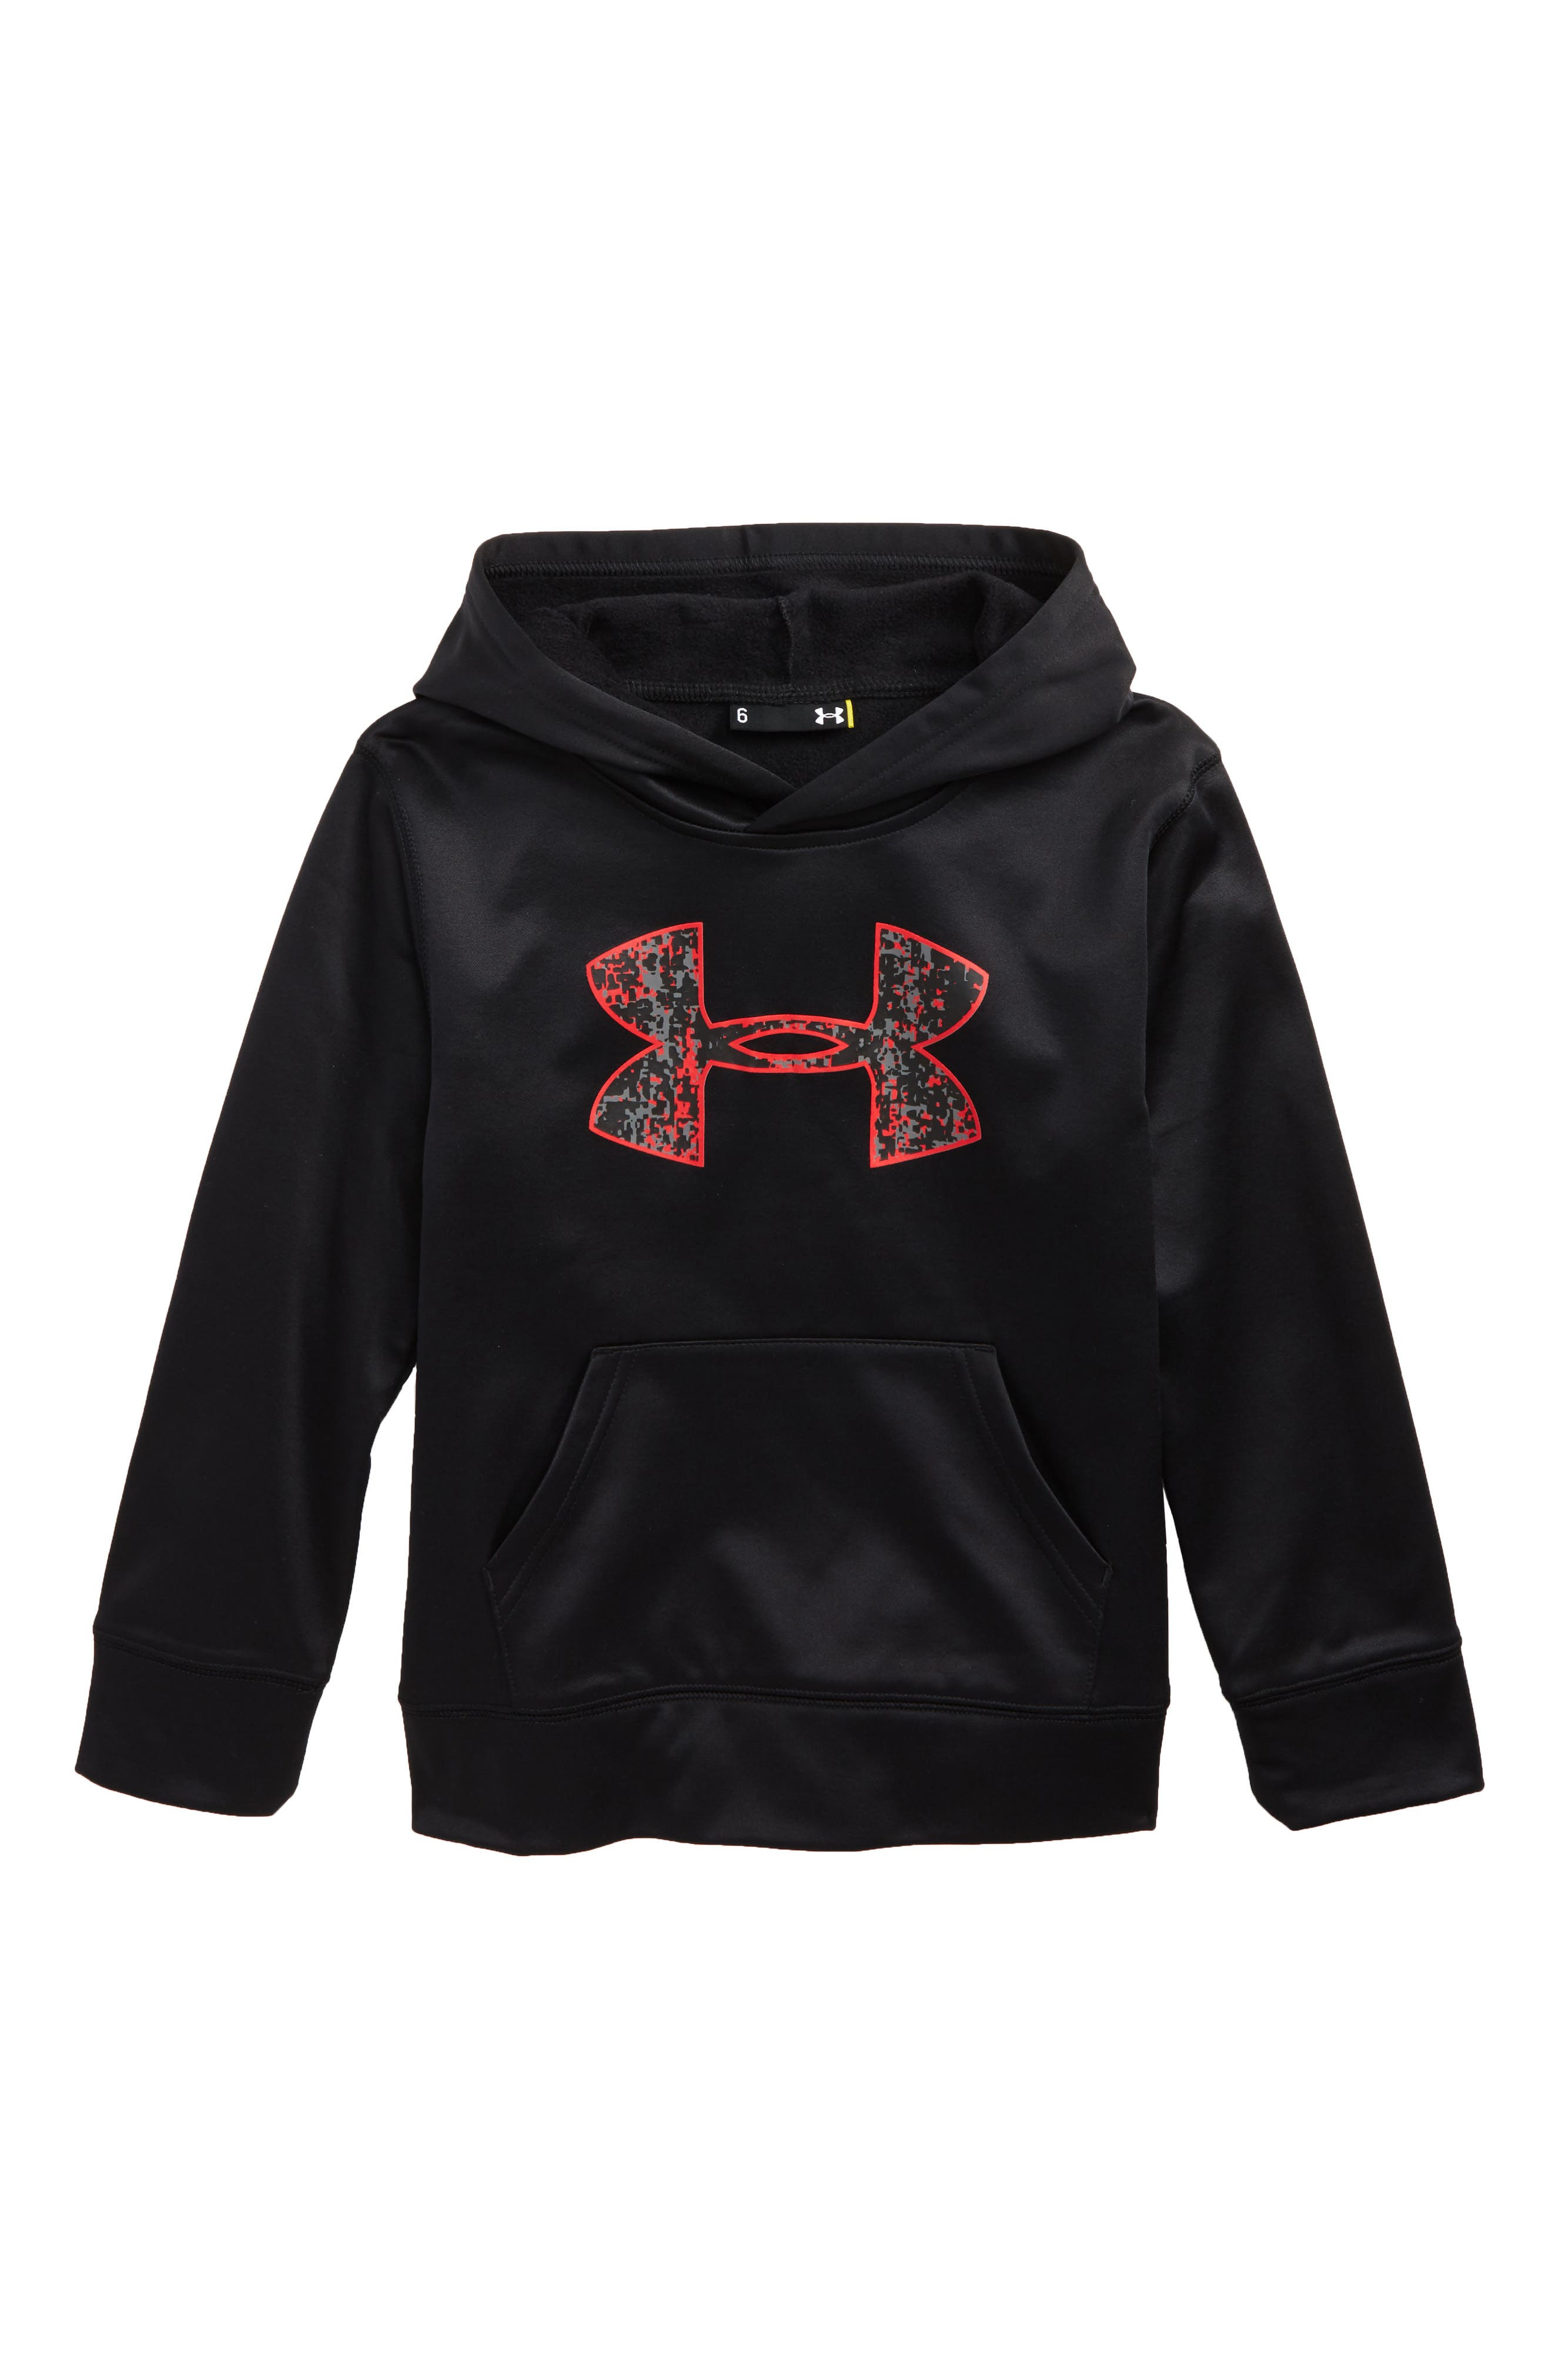 Alternate Image 1 Selected - Under Armour Digital City Logo Pullover Hoodie (Little Boys)